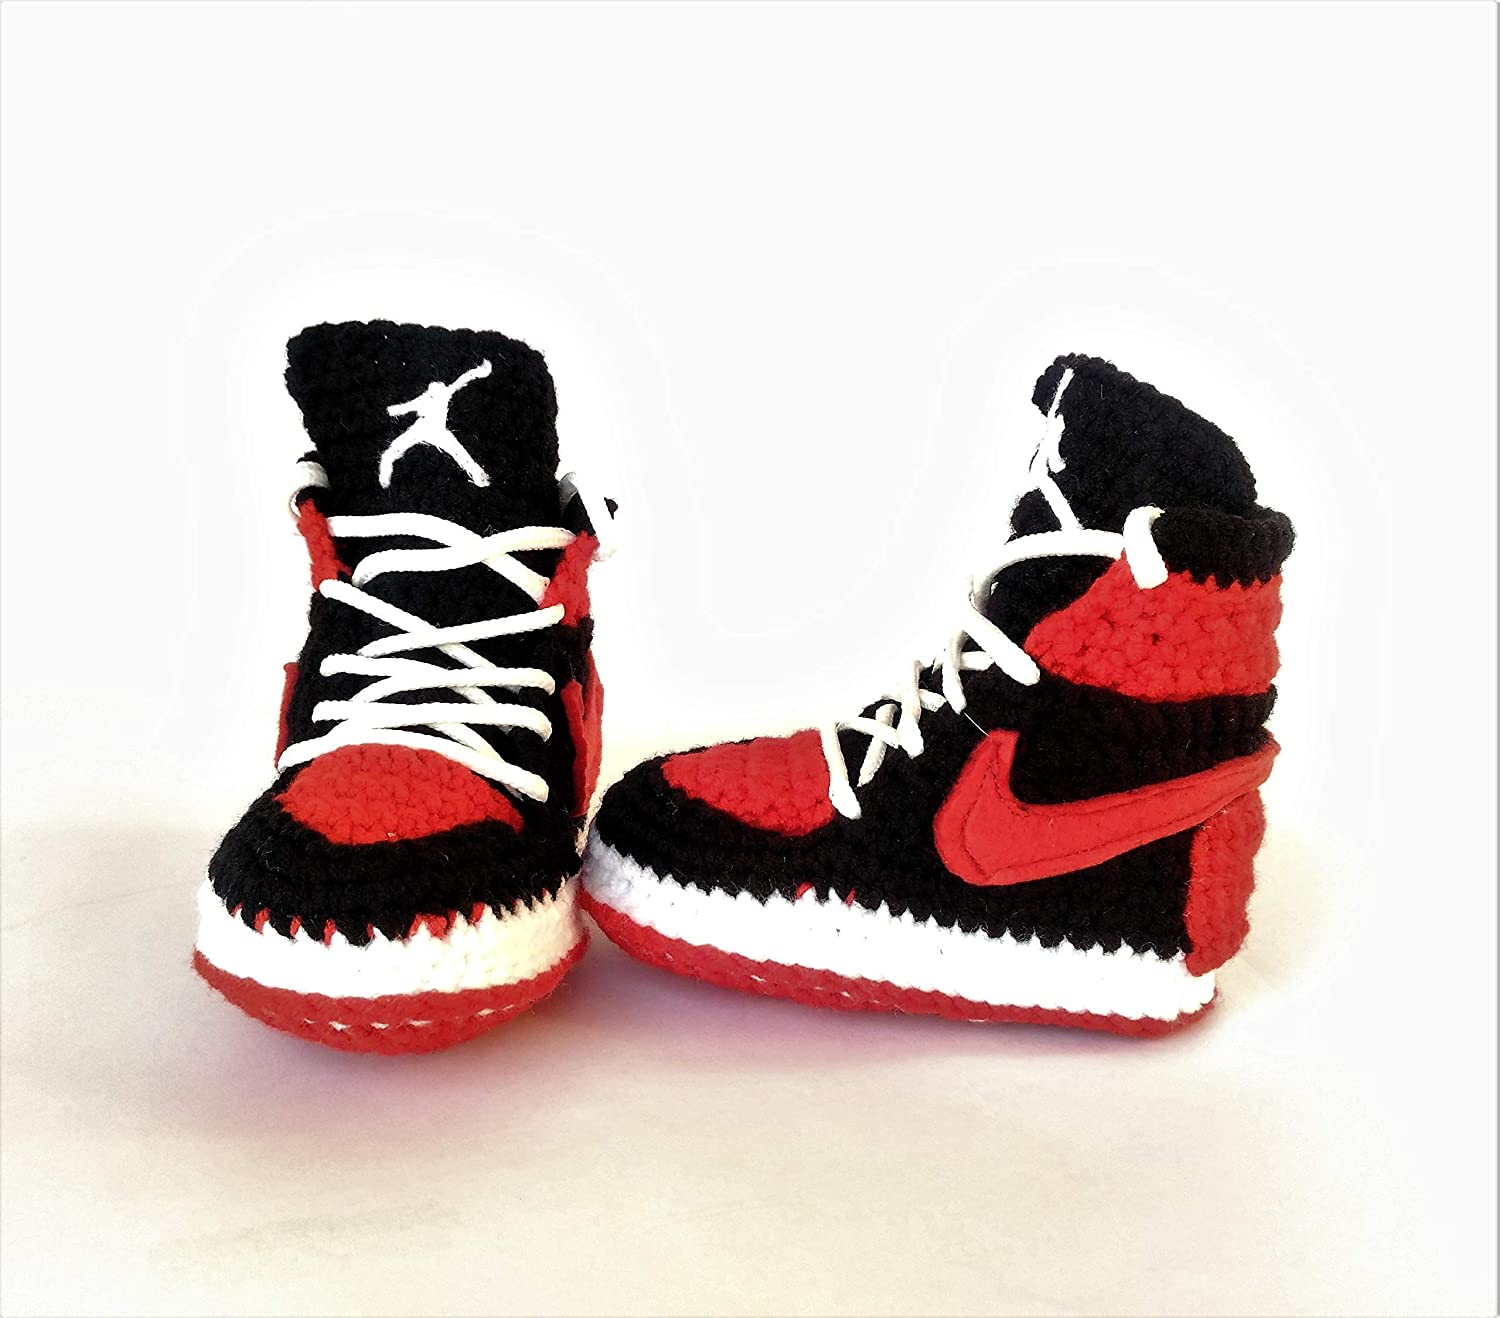 f37096f3bf947 Handmade Air Jordan1 Newborn Crochet Knitted Sneakers - Newborn Baby  Booties Girl & Boy Infant Knitting Slippers - Newborn Boy Gril Coming Home  Outfit ...